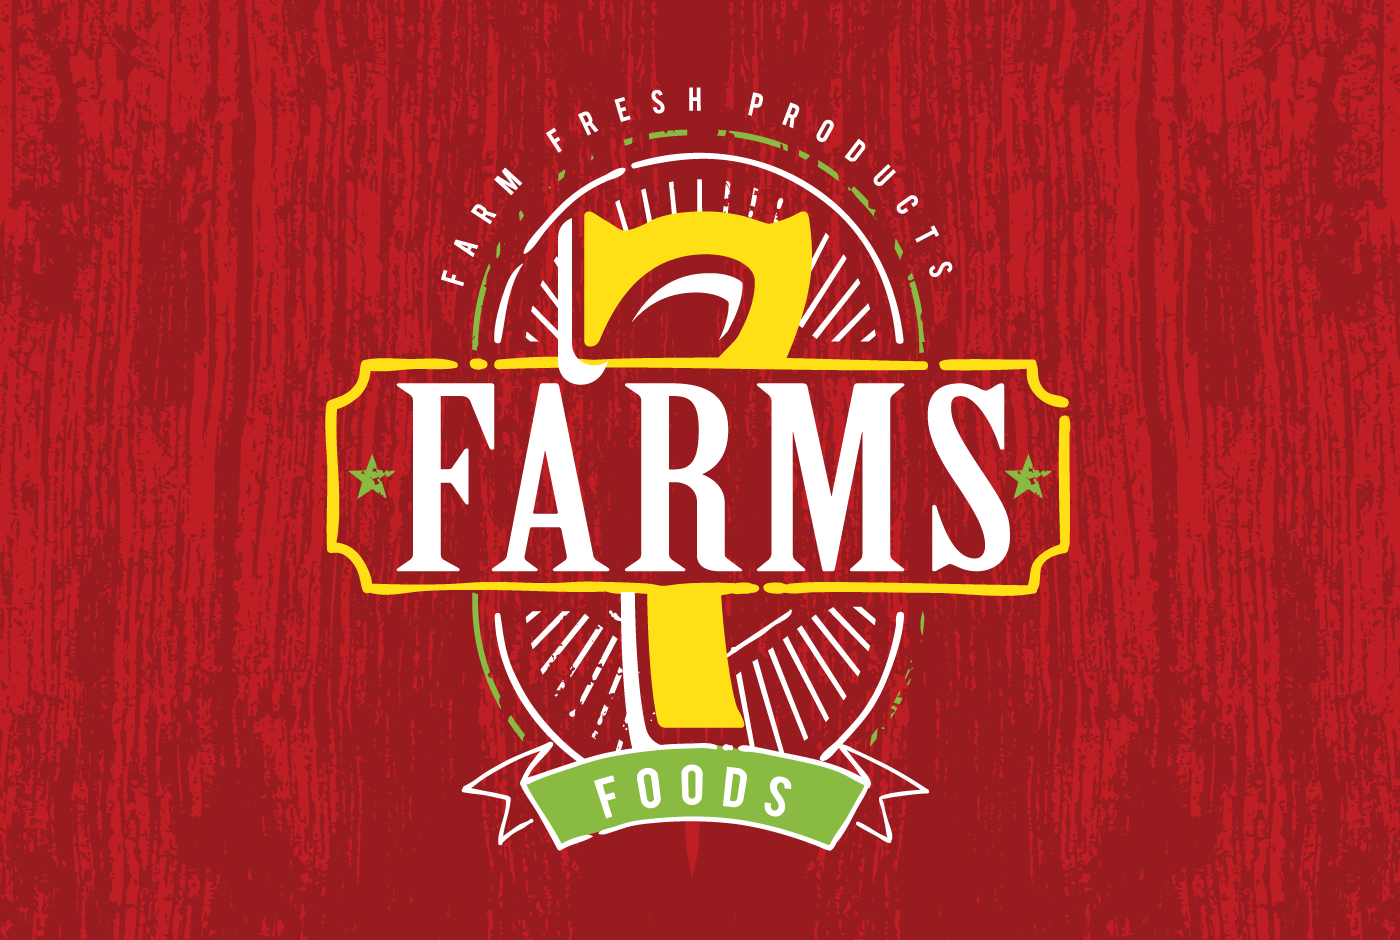 7 Farms Foods Logo Design